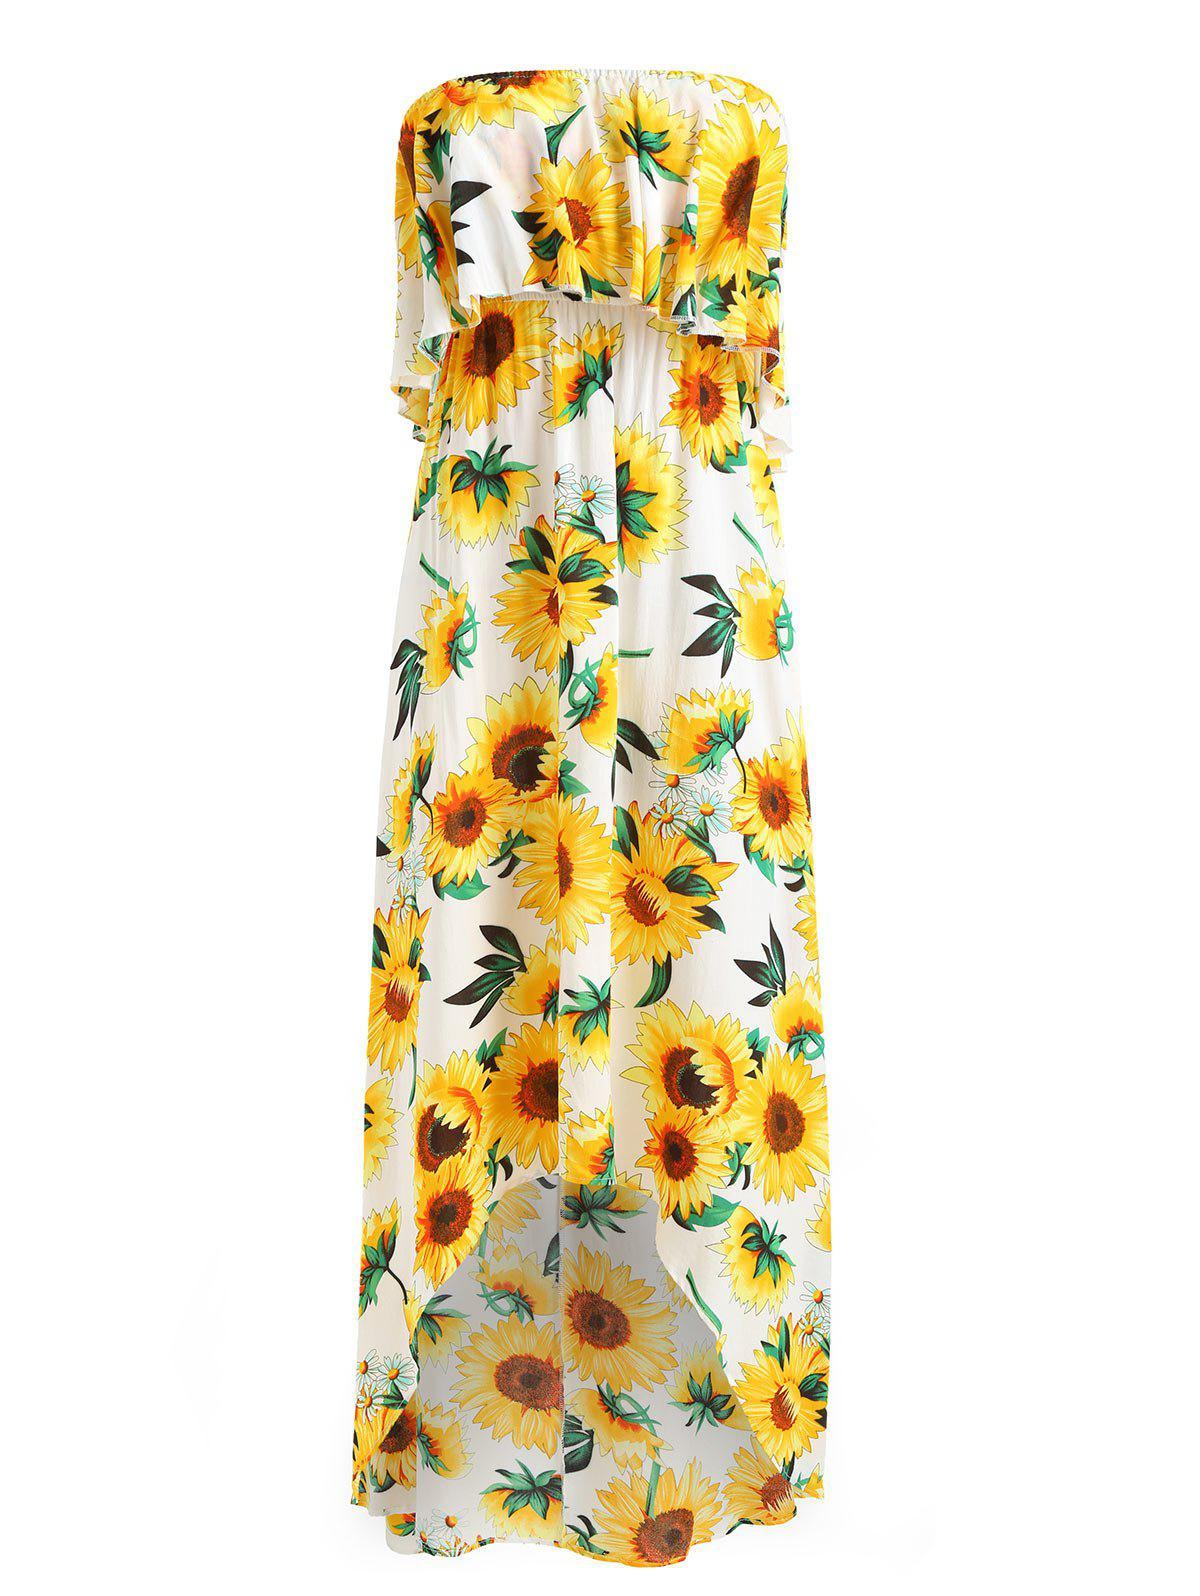 Best Sunflower Print High Low Strapless Boho Dress